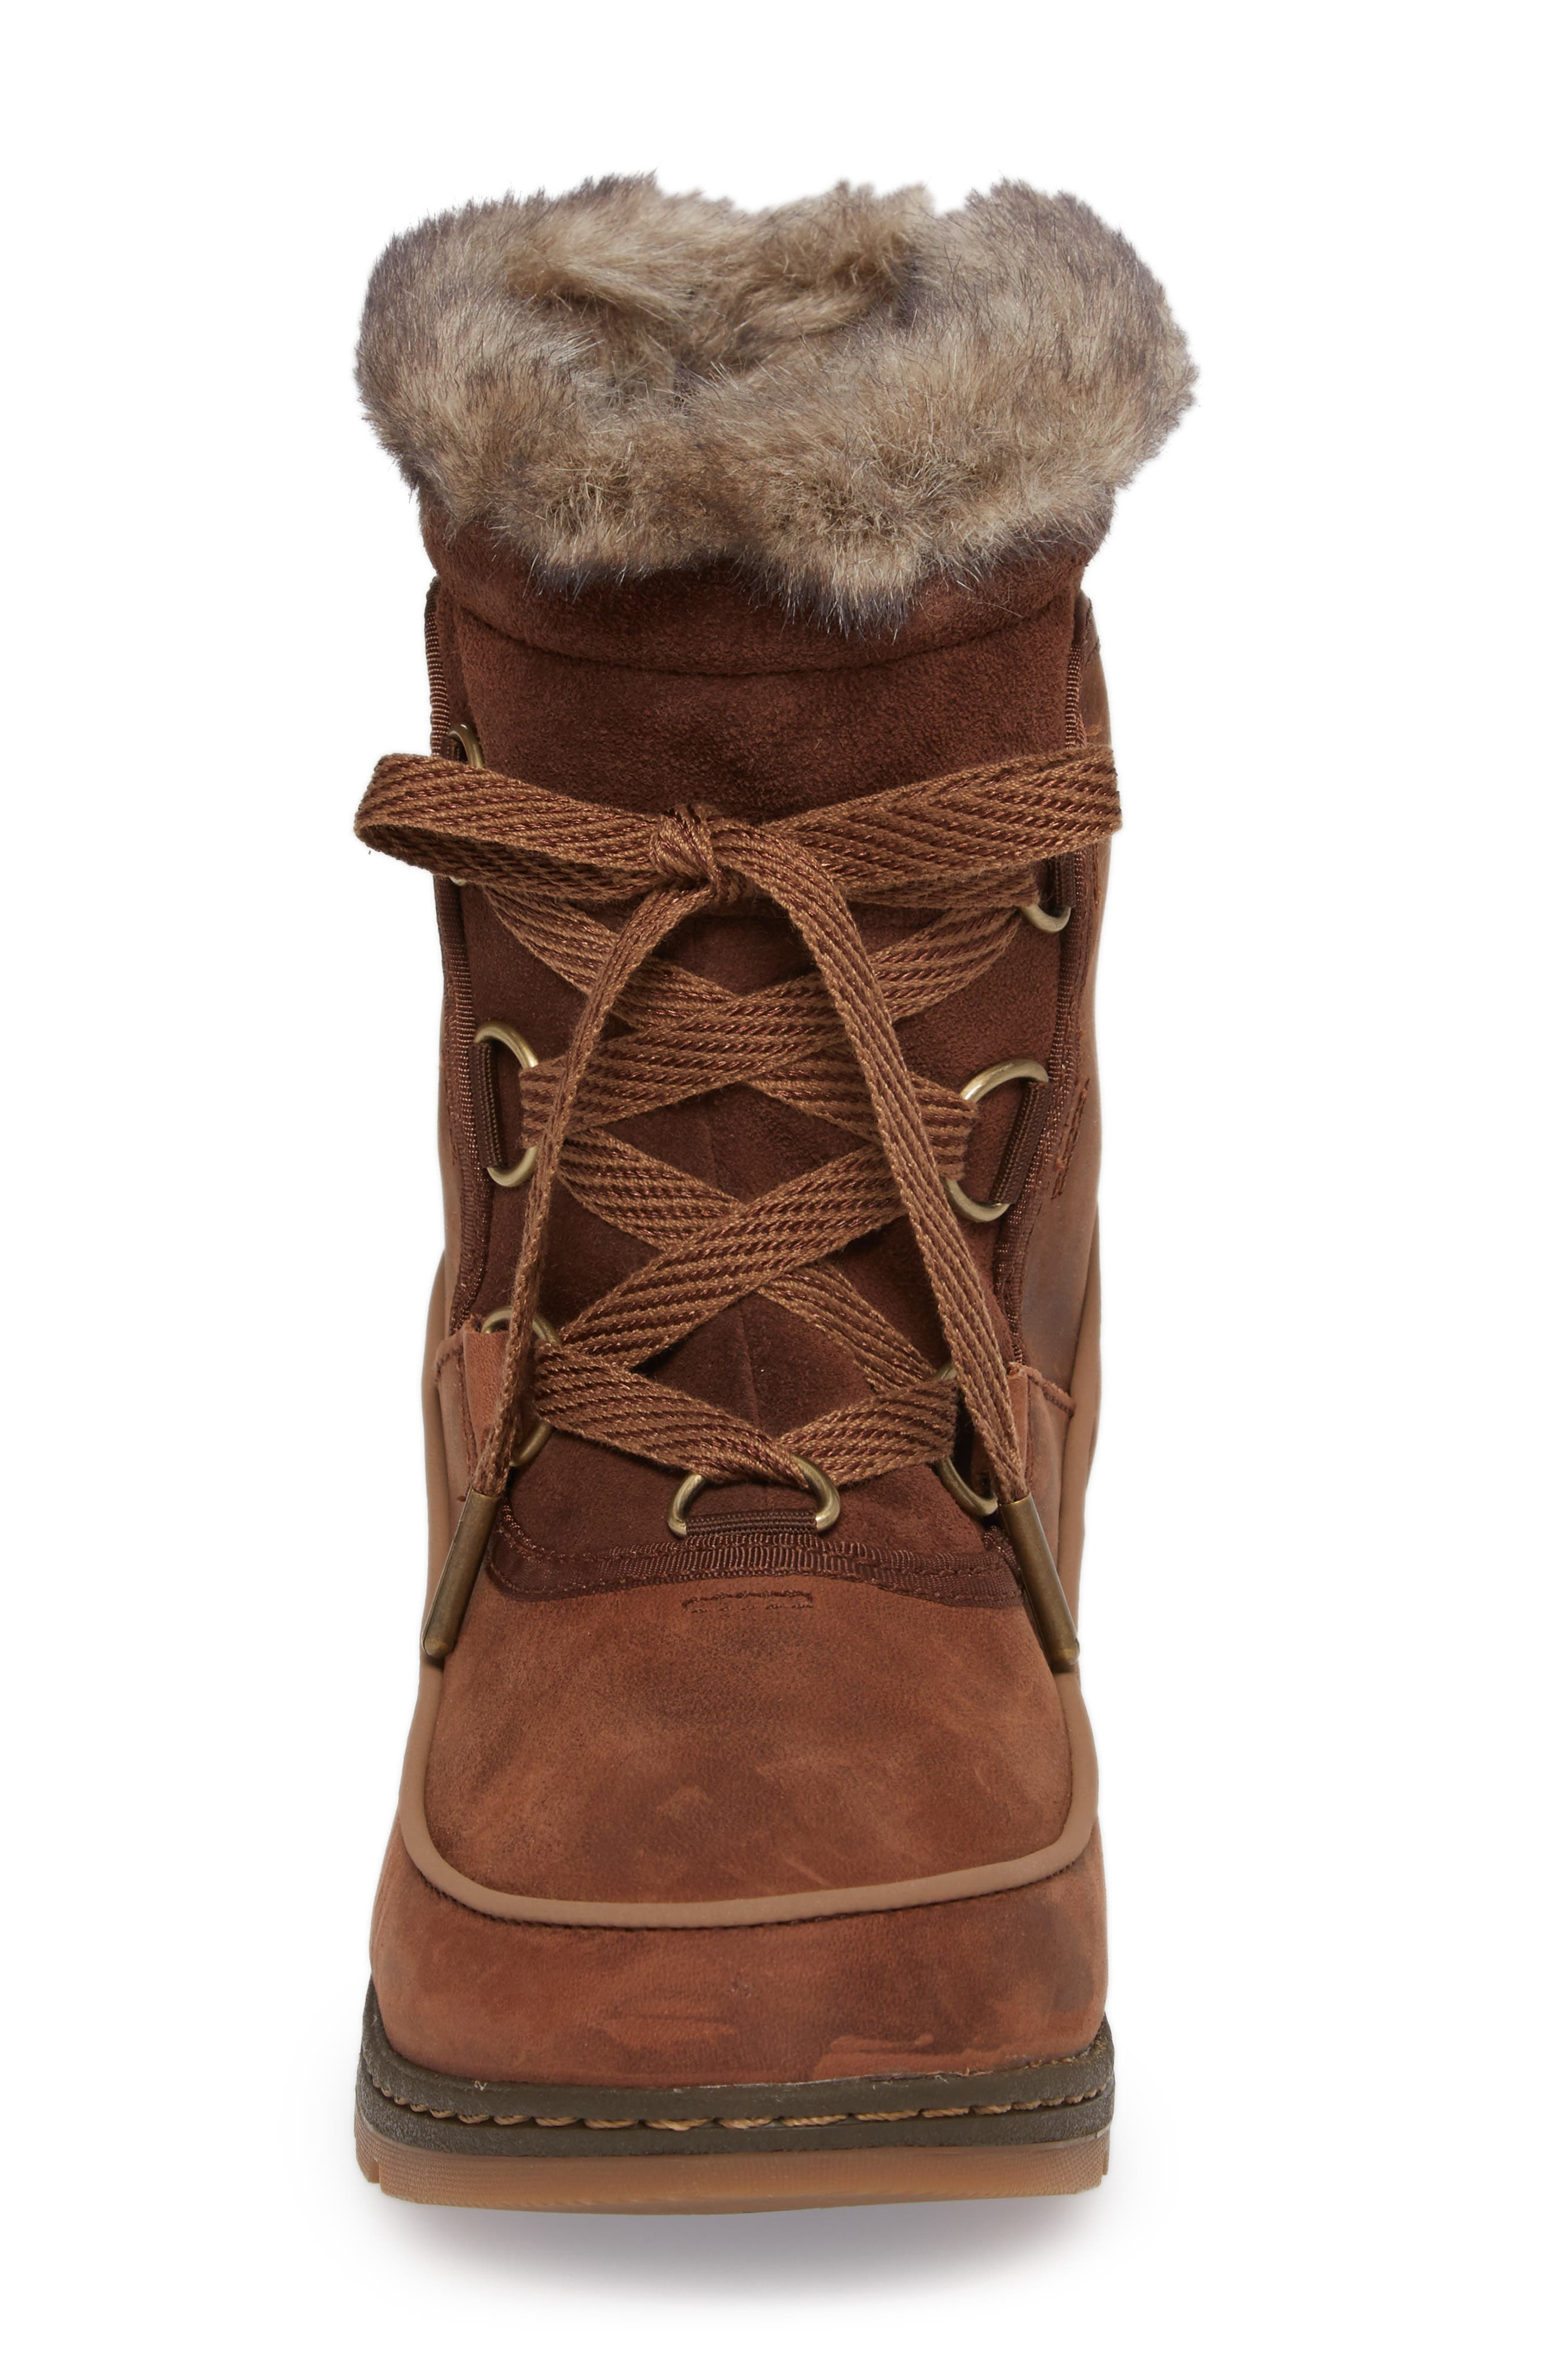 Tivoli II Insulated Winter Boot with Faux Fur Trim,                             Alternate thumbnail 8, color,